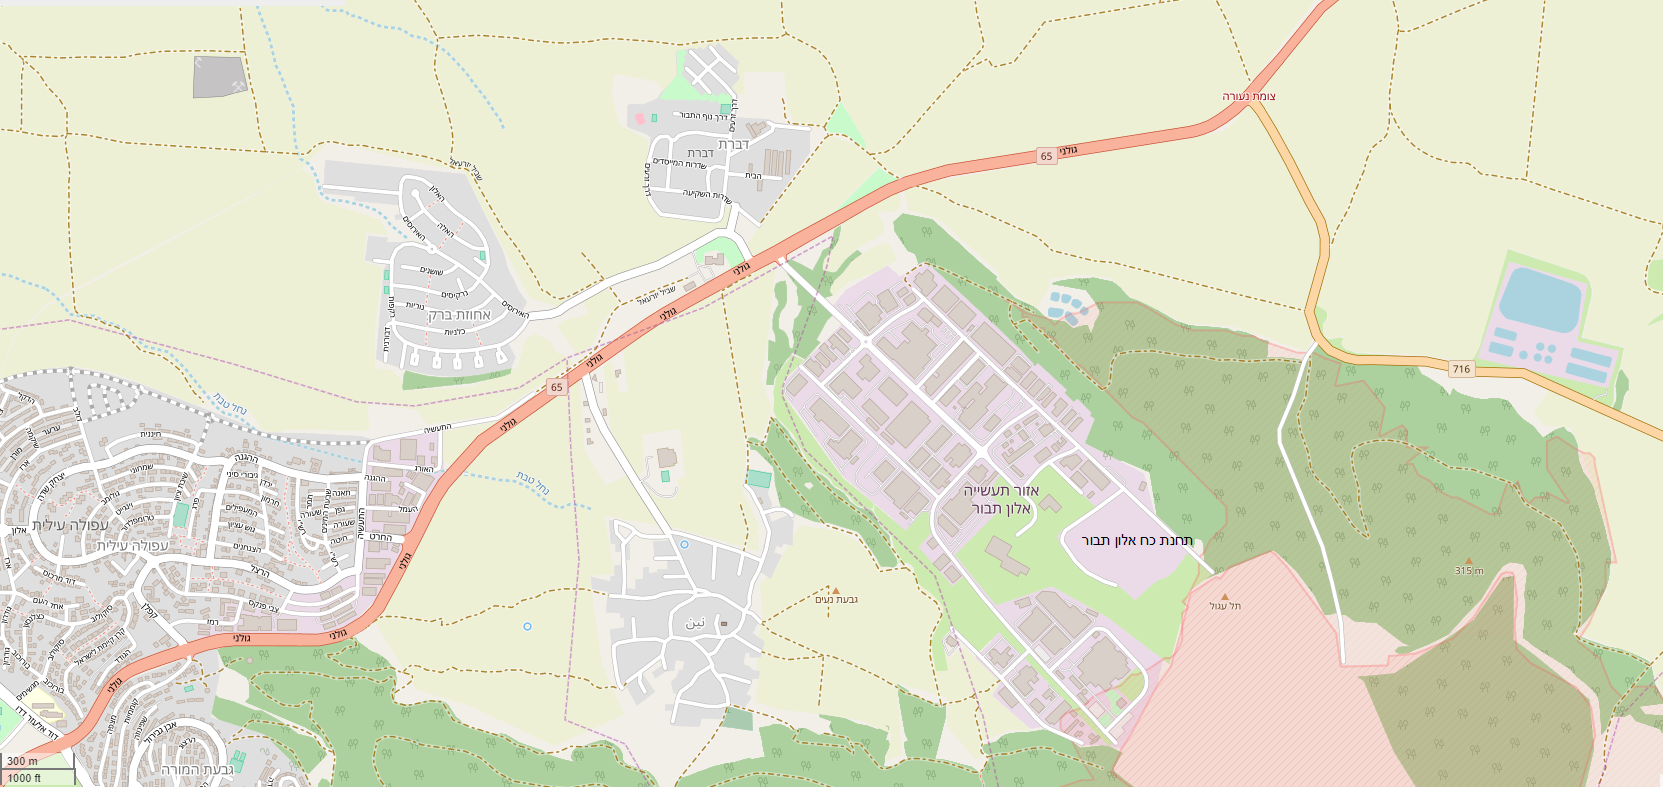 File:Map of Alon Tavor Power plant area.png - Wikimedia Commons on